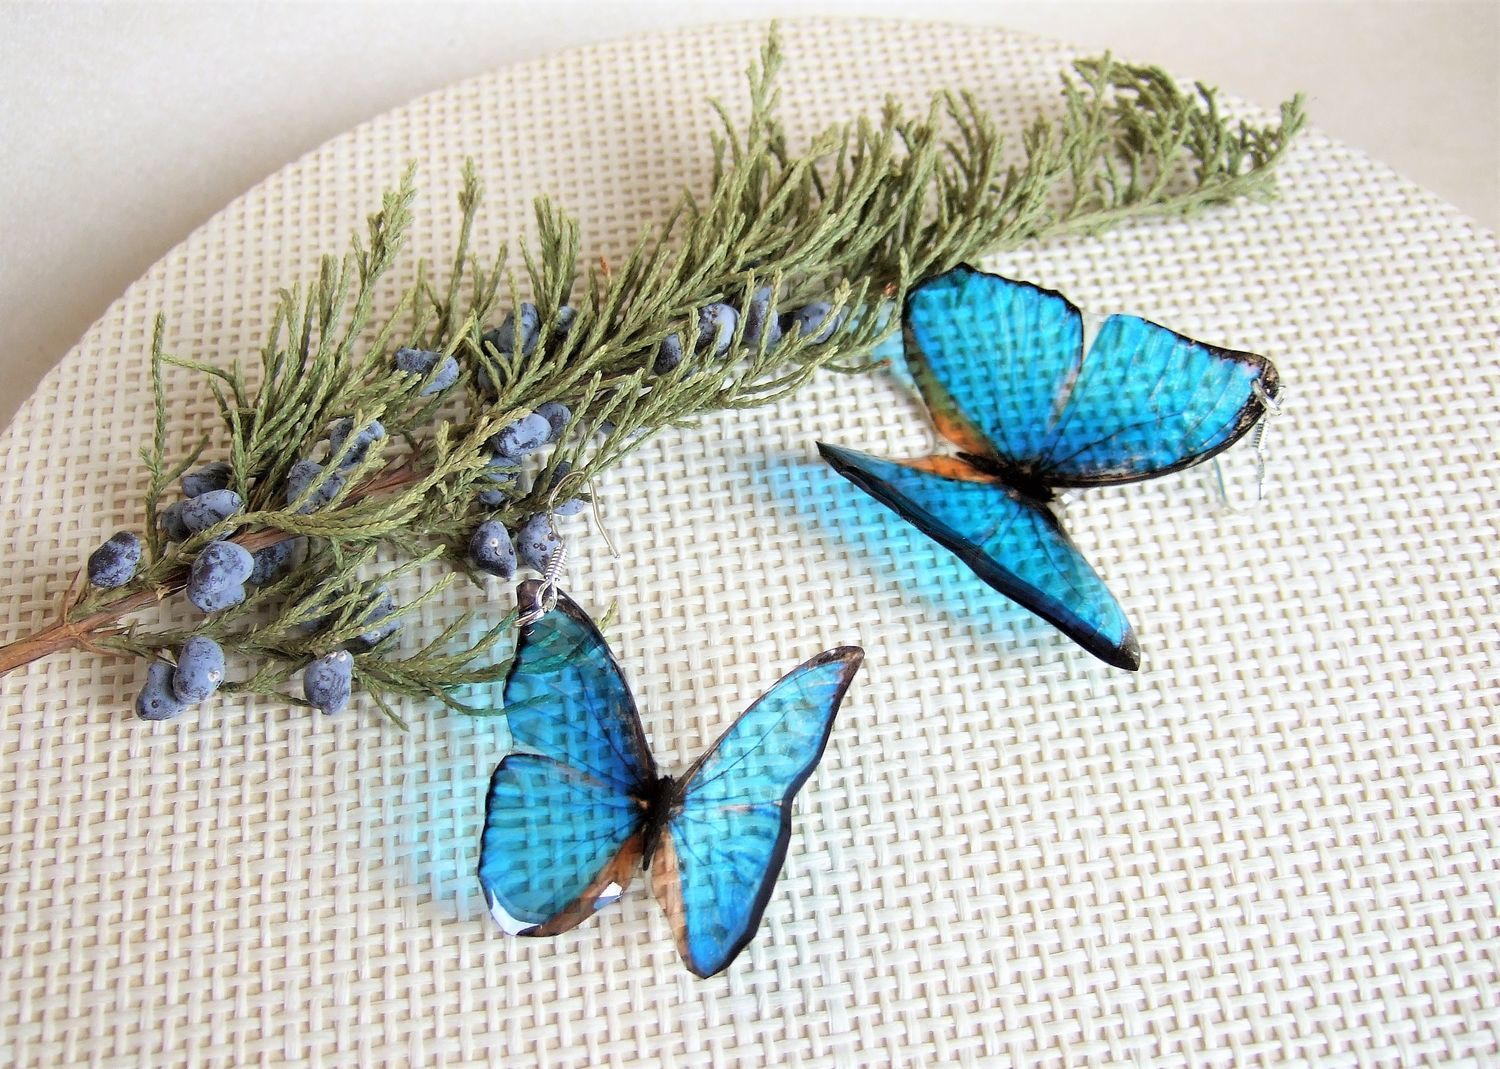 Transparent Earrings Bright Blue Turquoise Fluttering Butterflies No. №2, Earrings, Taganrog,  Фото №1